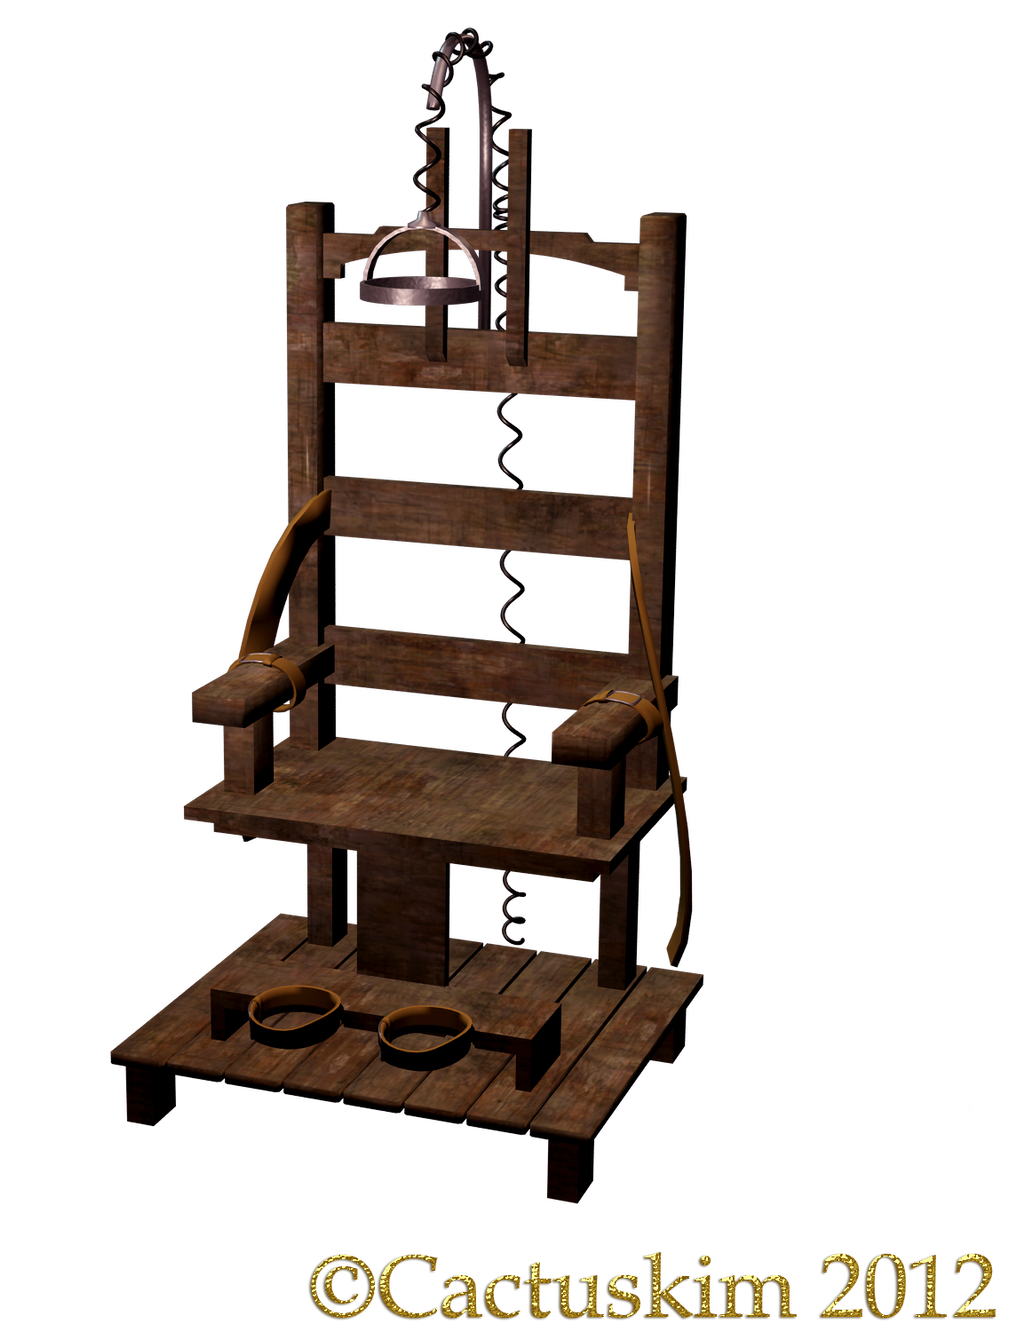 The chair kl png electric chair by cactuskim on deviantart - Stuhl transparent ...